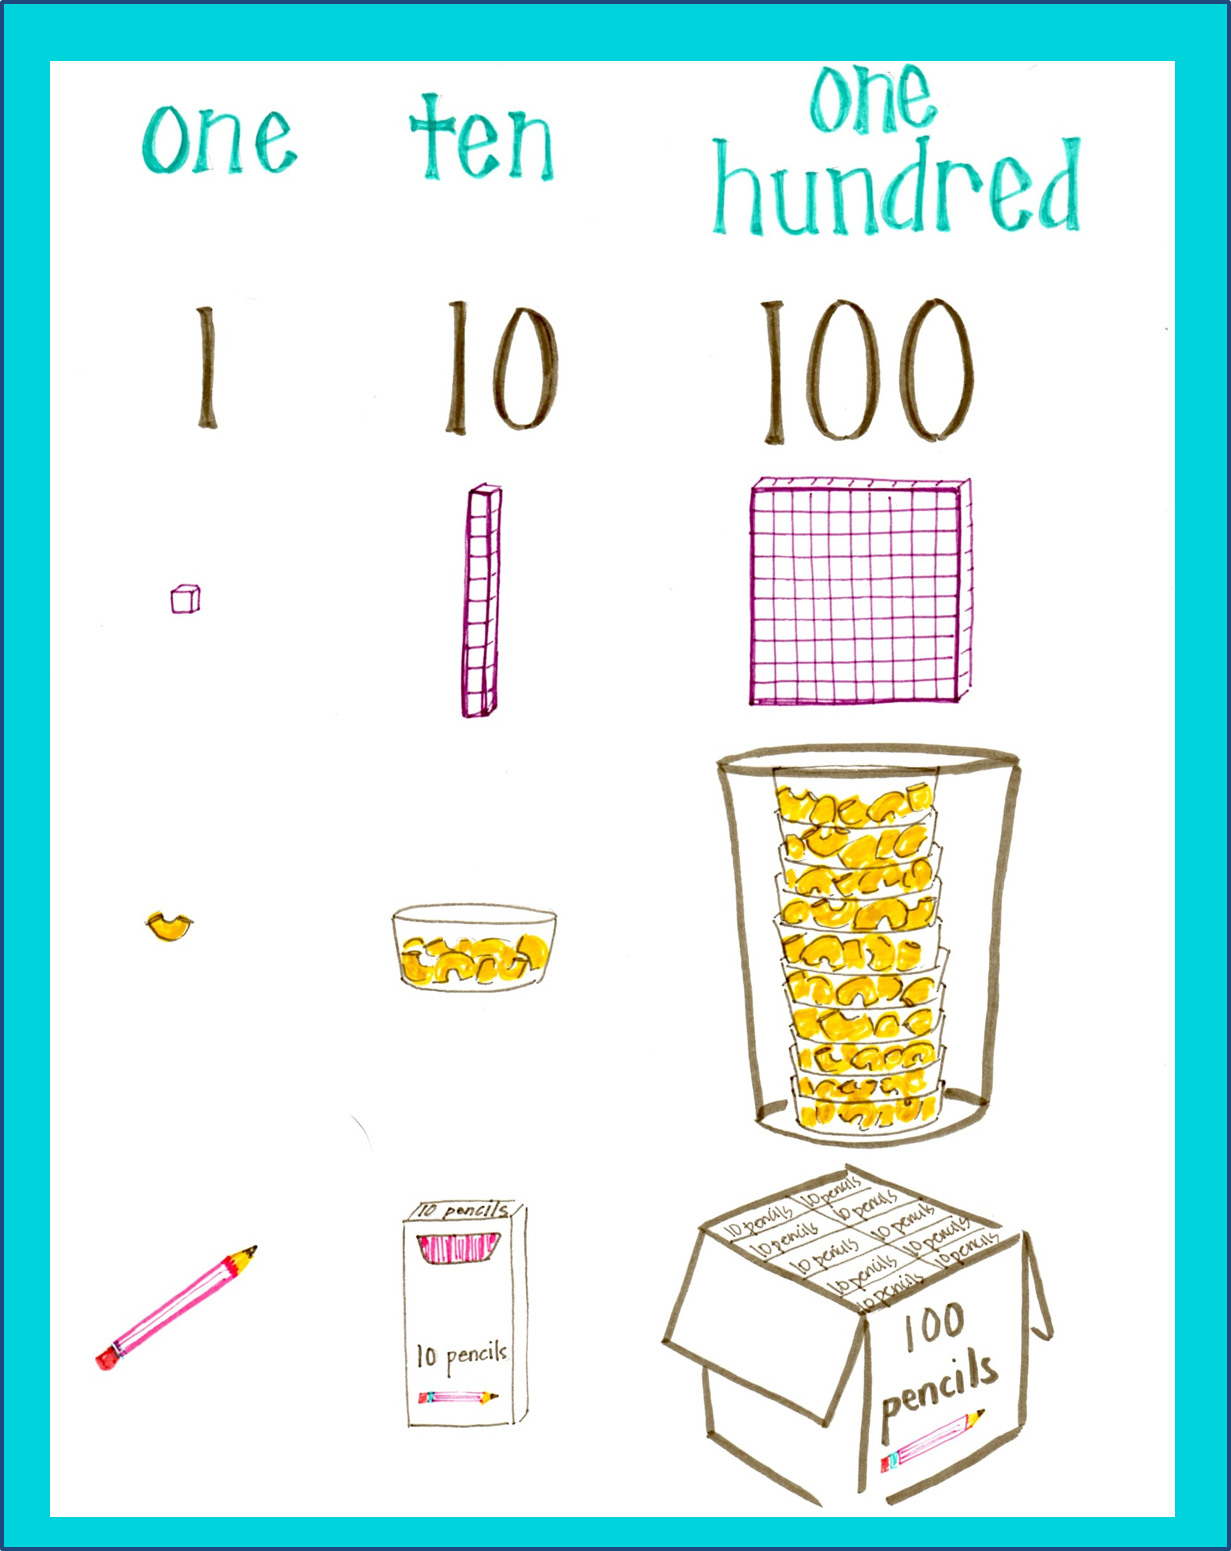 Adding Worksheets | Free Printable Math Worksheets - Mibb-design.com ...